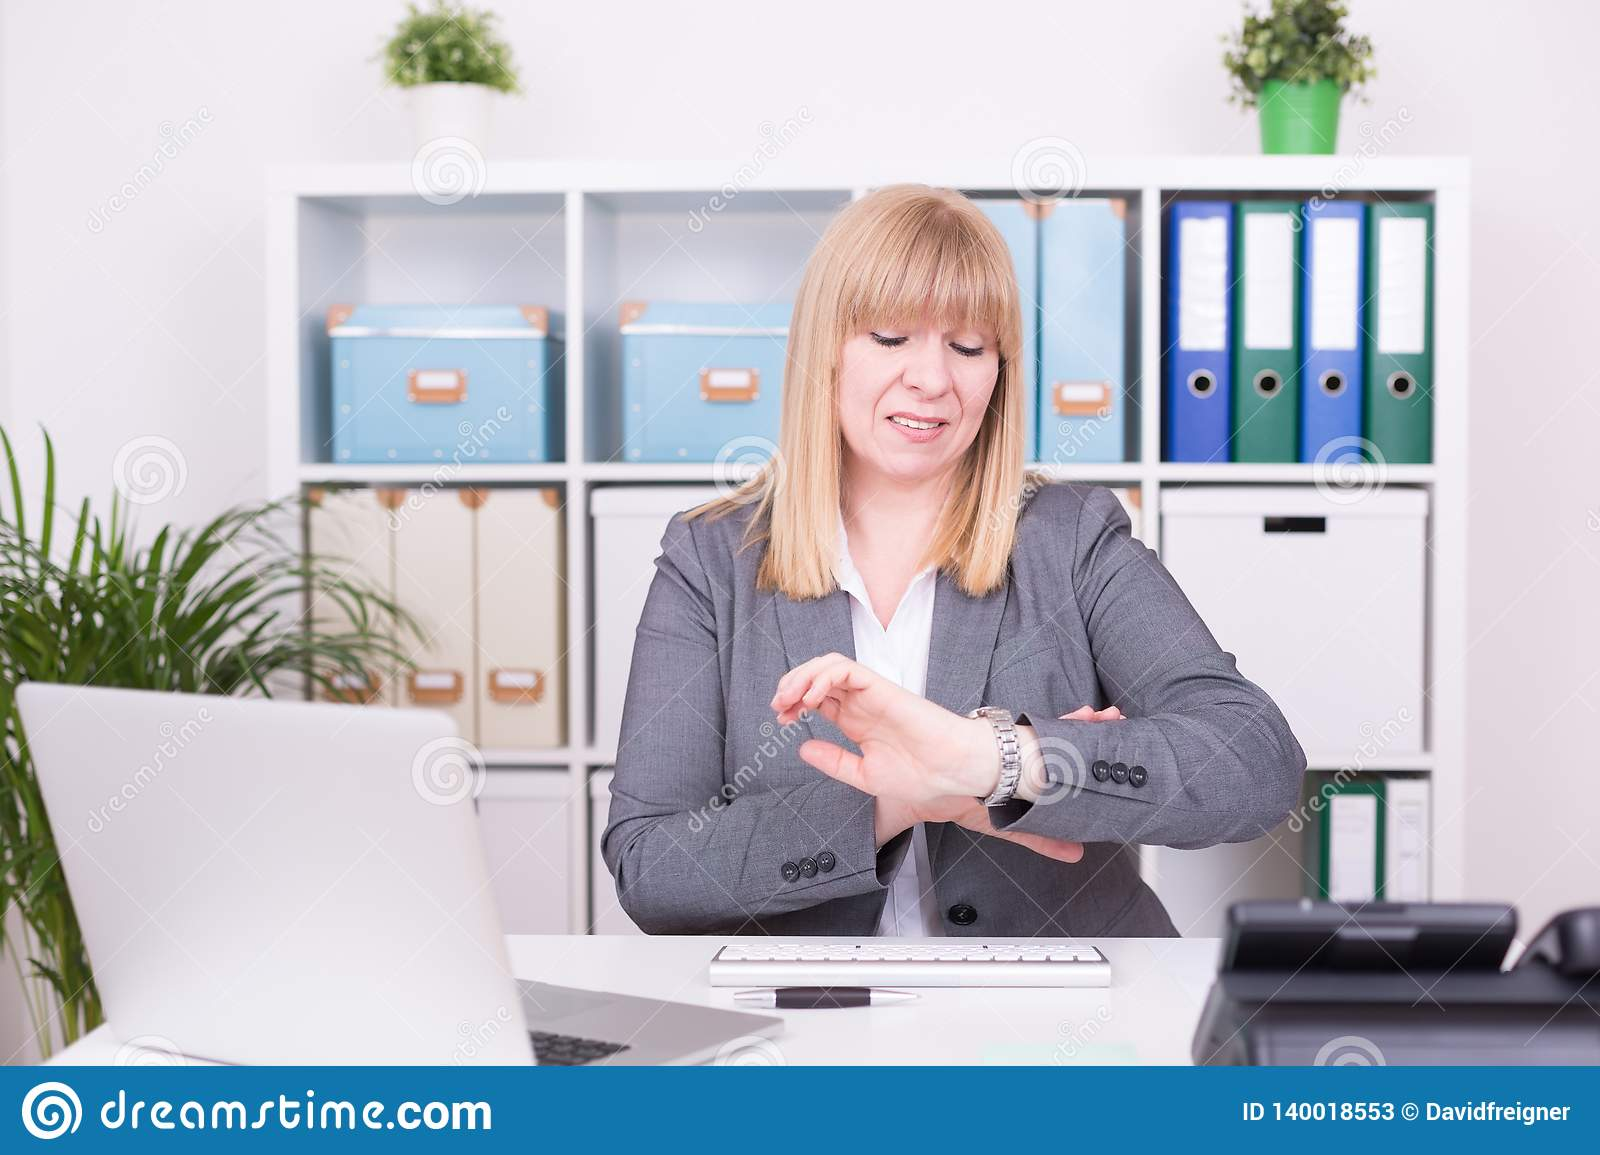 Woman at the office having time pressure. Business concept